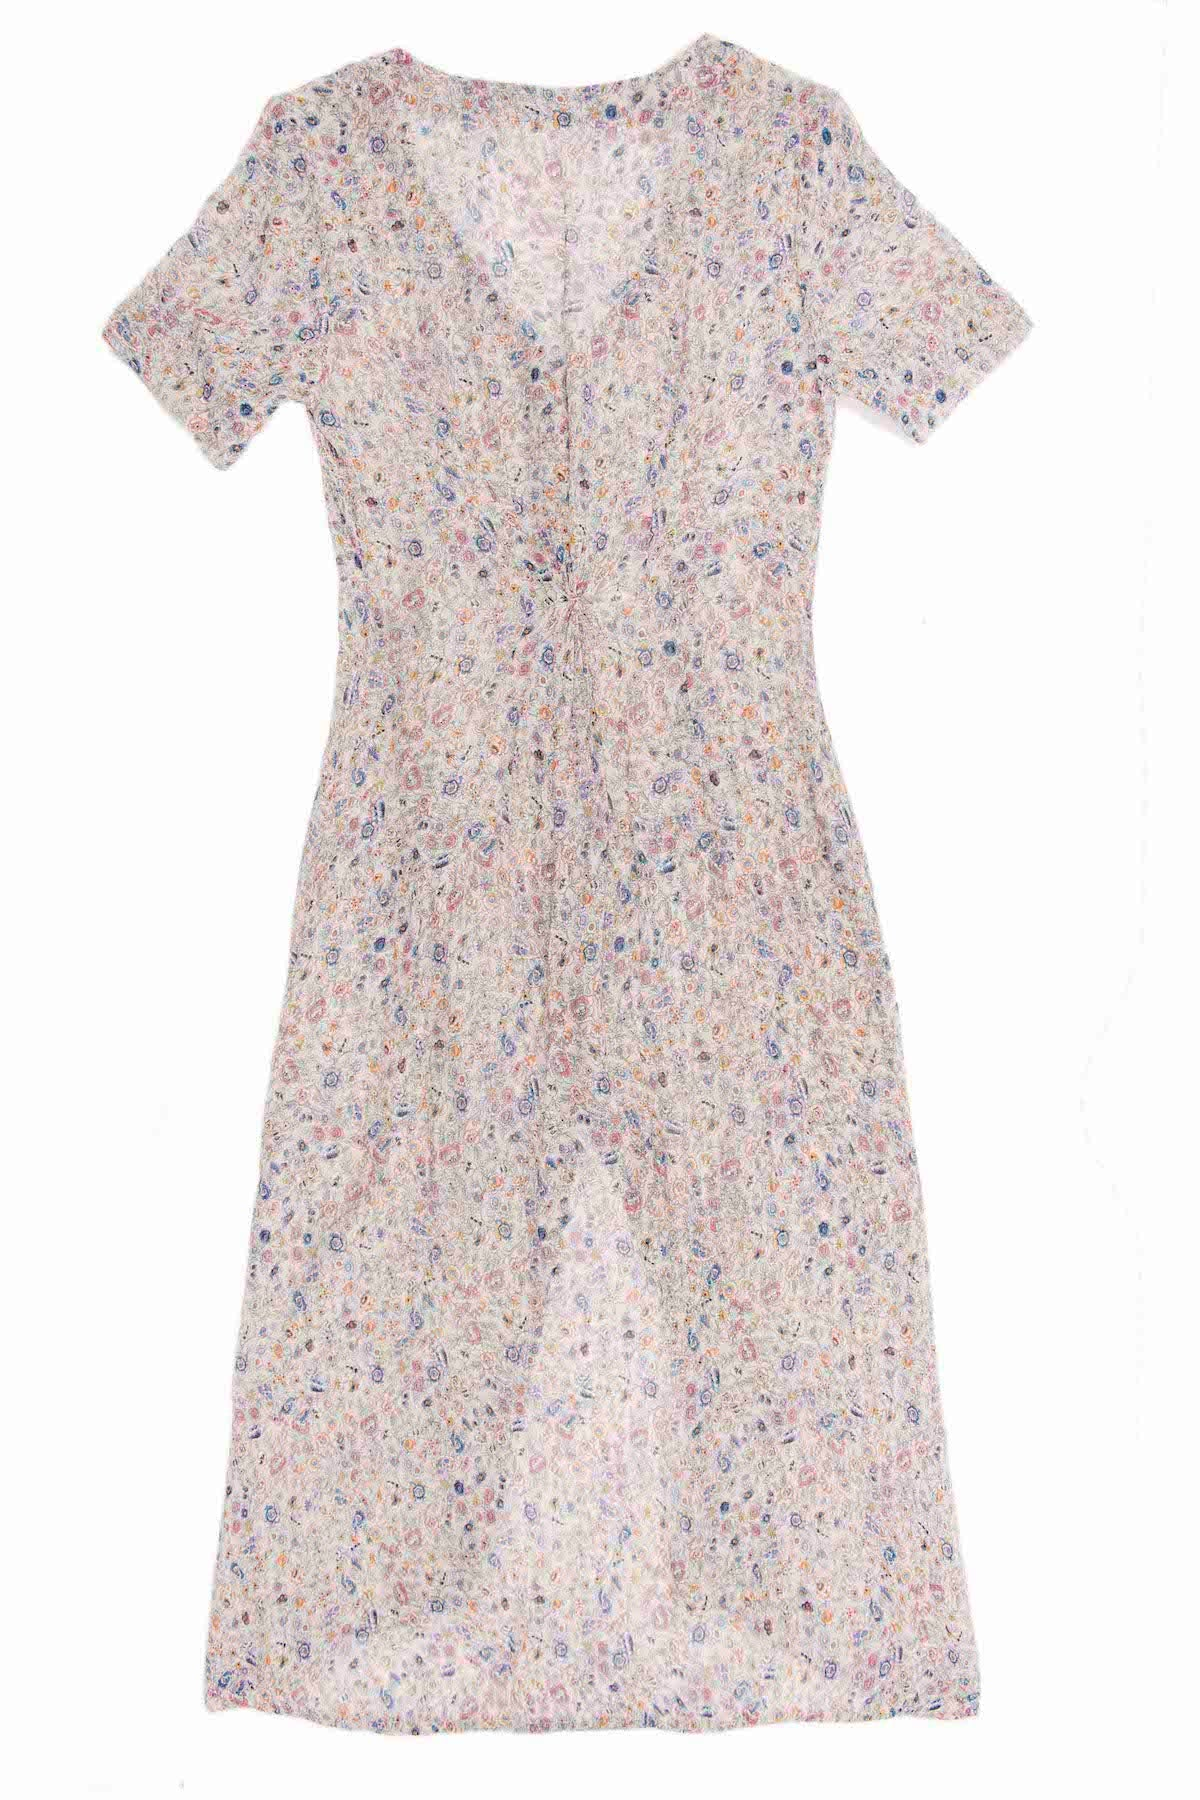 NUDE FLORAL SALINA DRESS